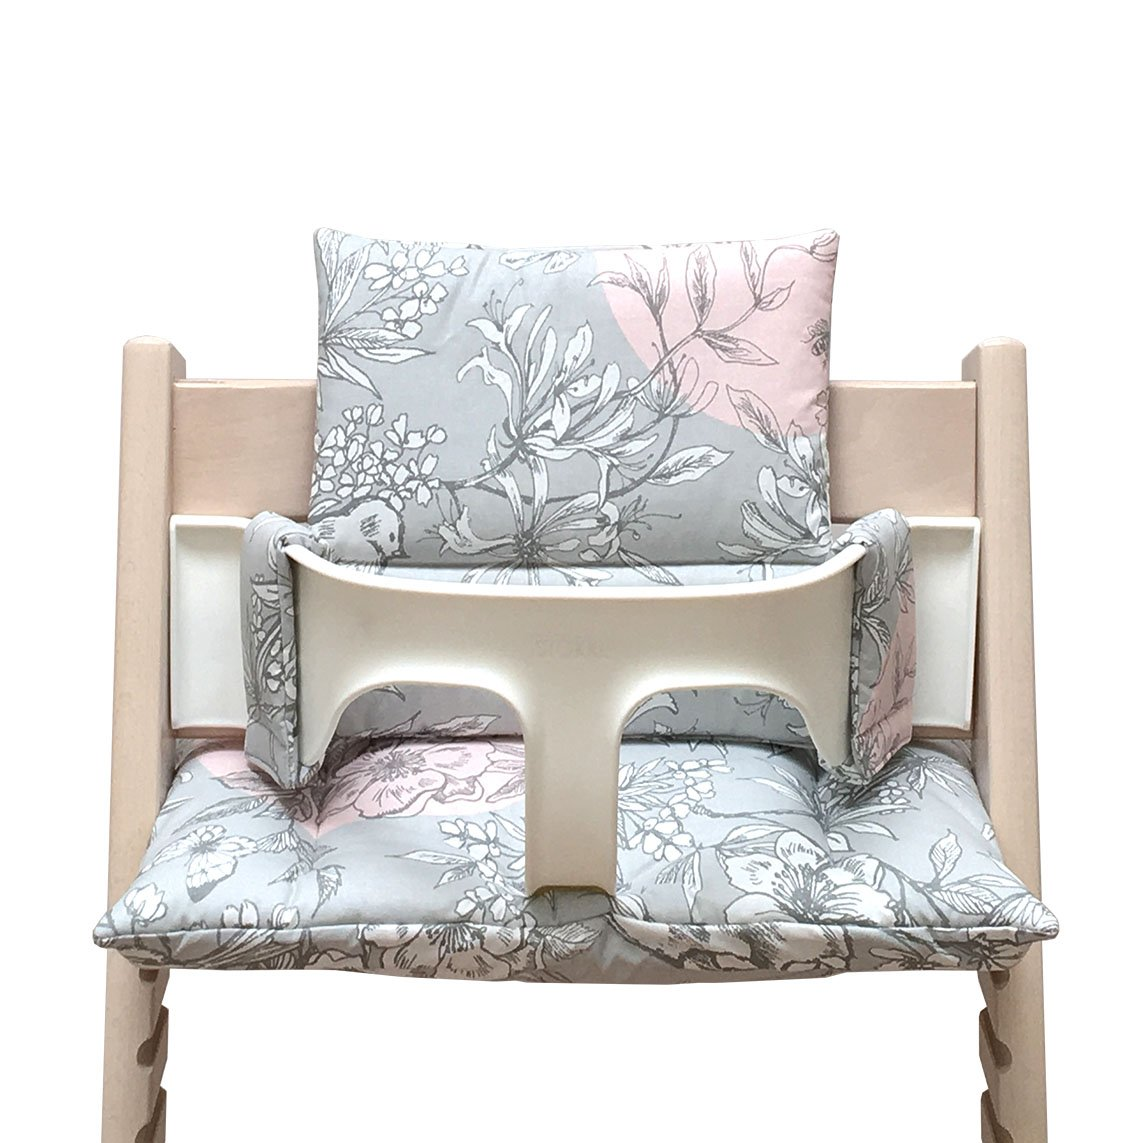 Blausberg Baby - Coated Cushion Set for Tripp Trapp High Chair of Stokke - Cherry Blossom Gray Pink Bird